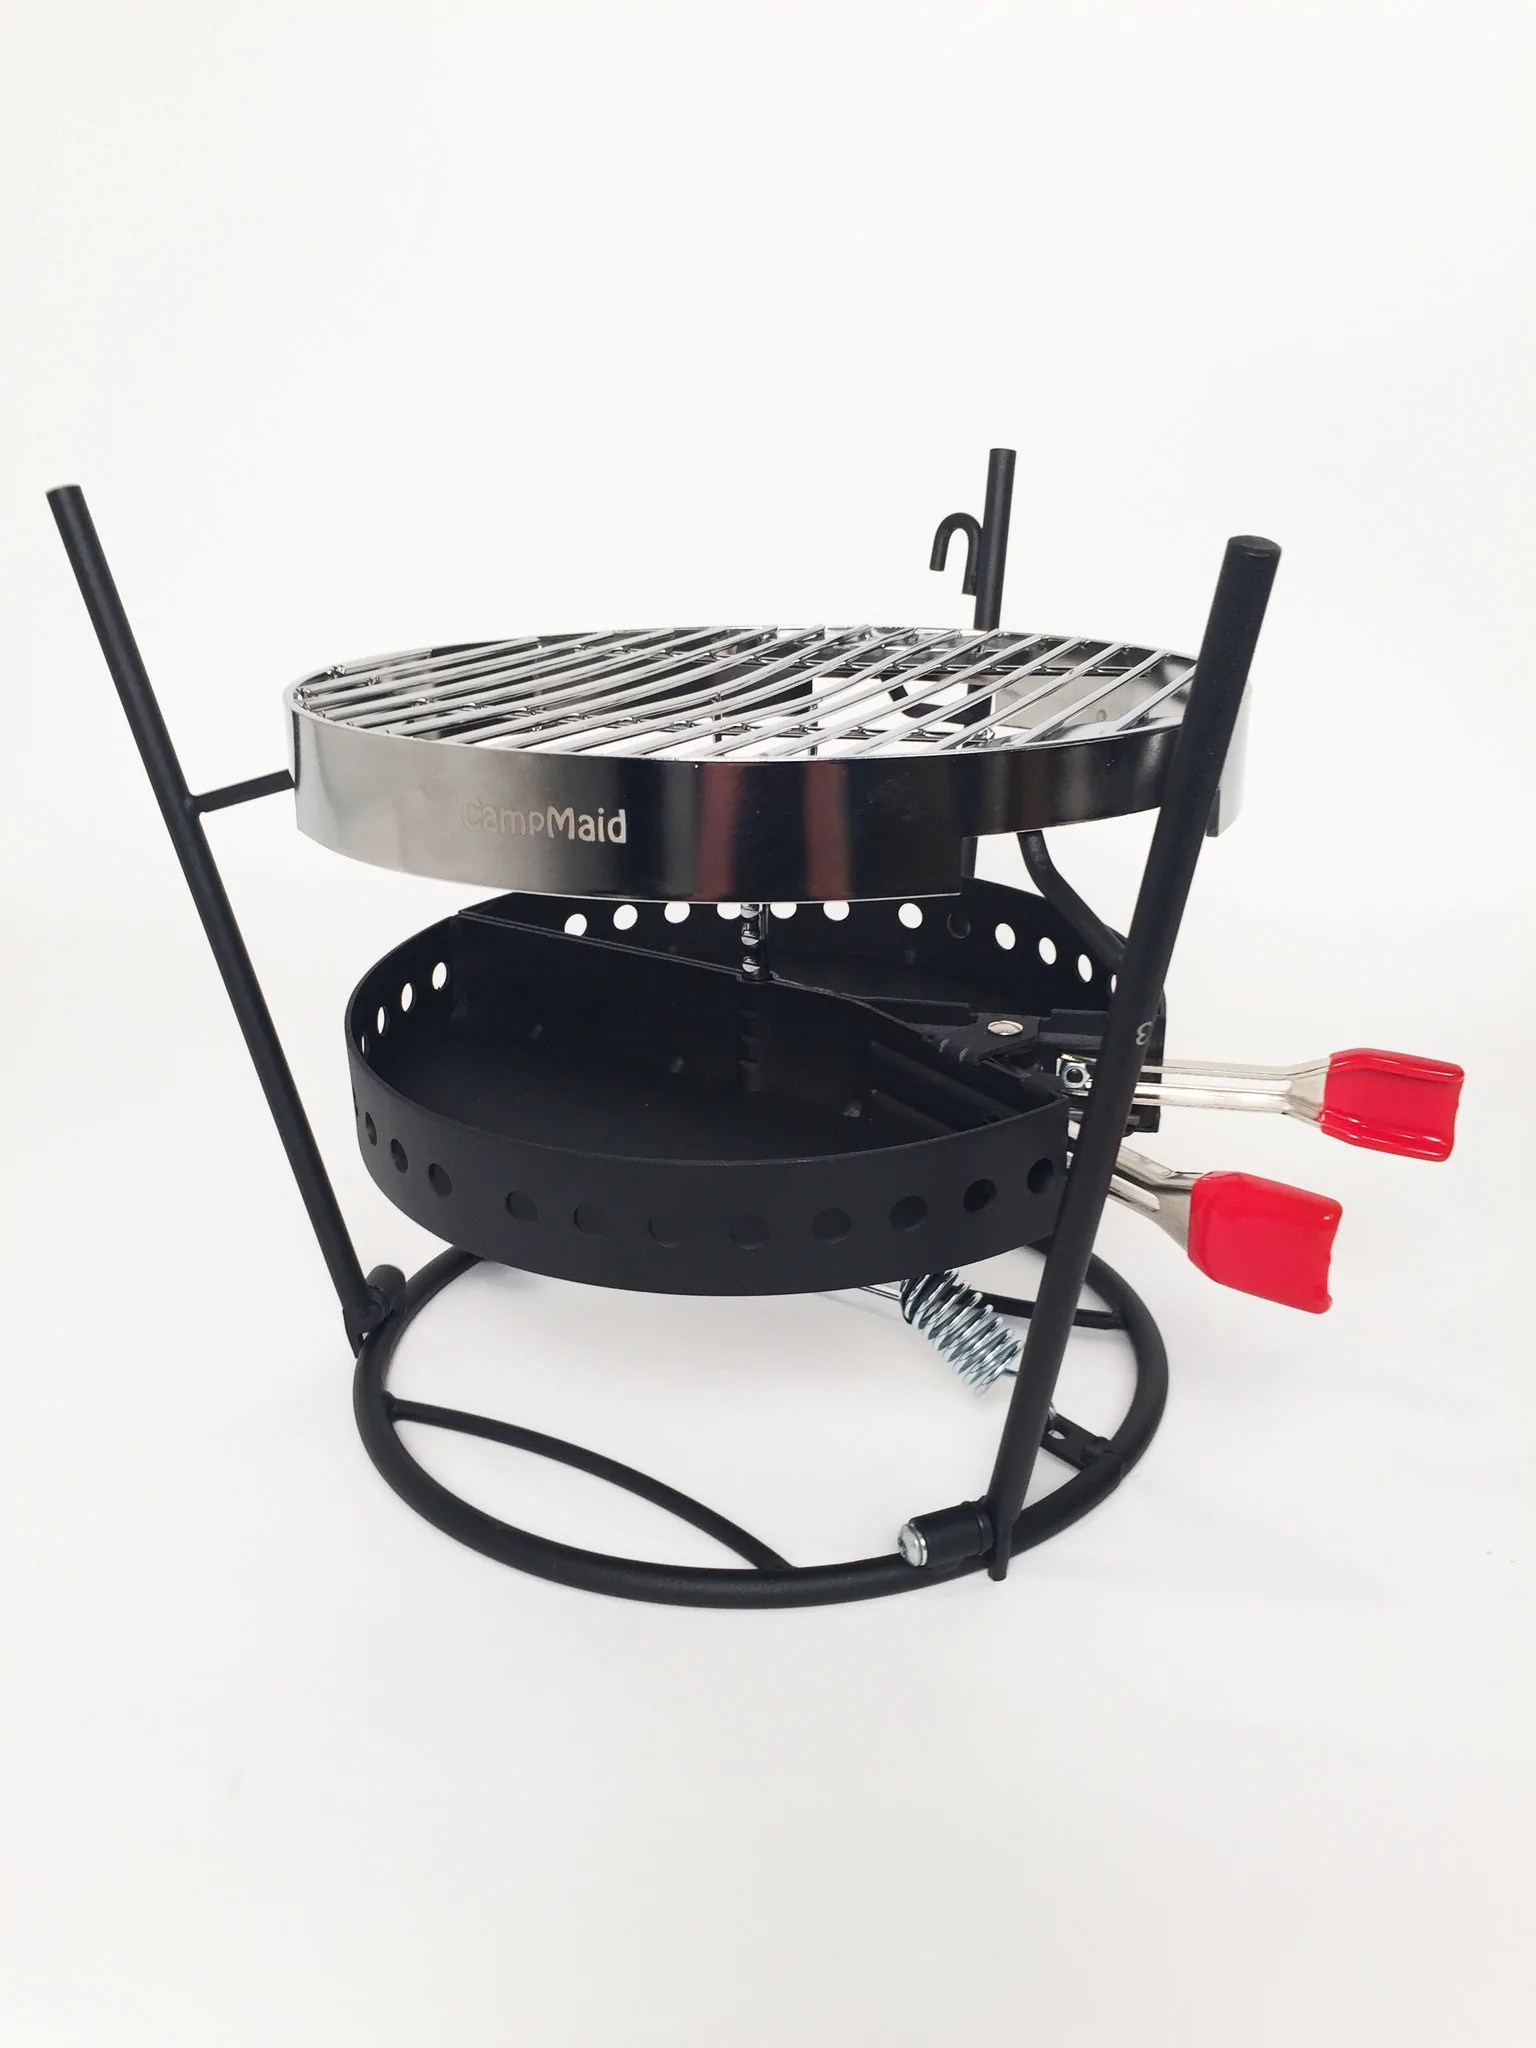 Grill Camping Portable Camping Cookout Kit